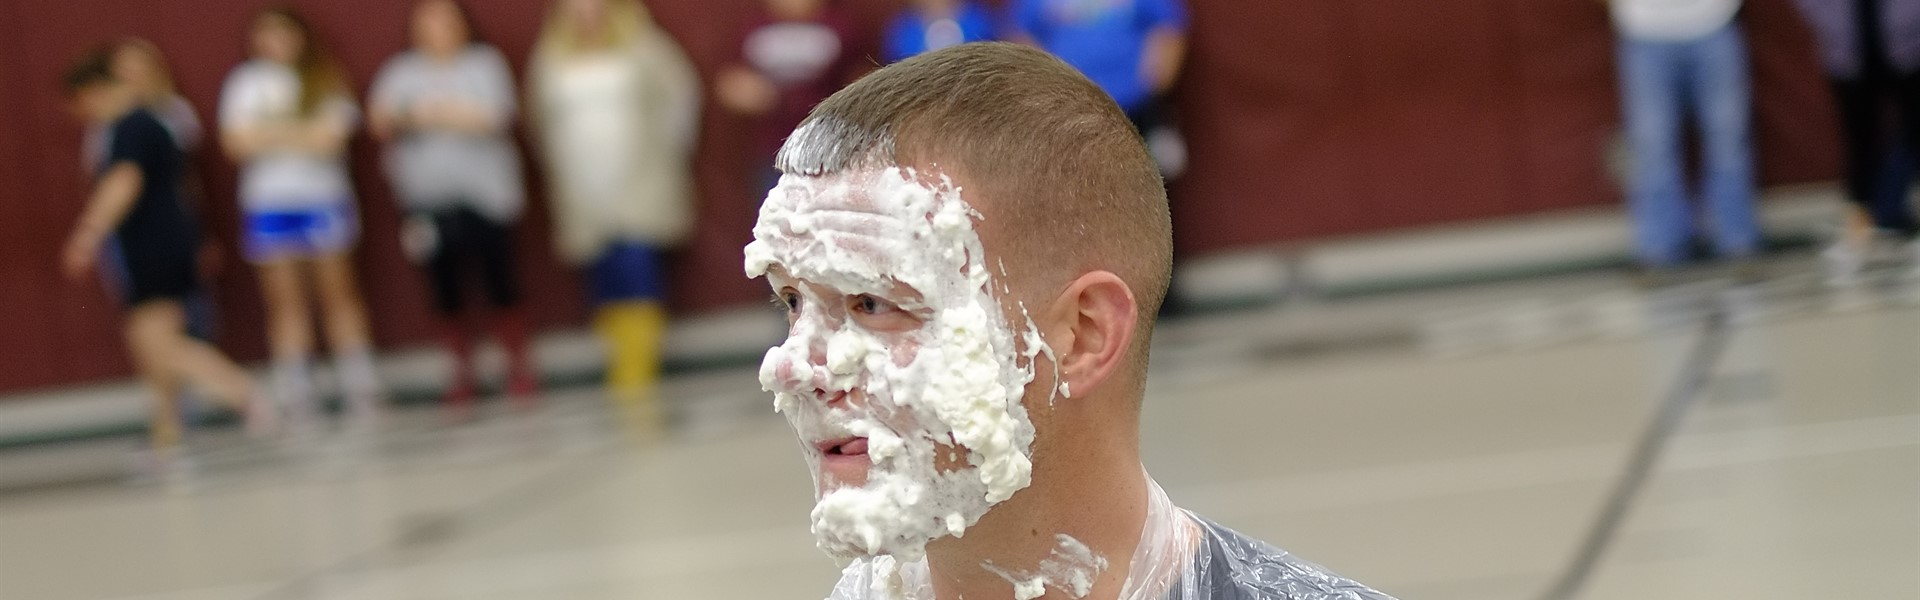 Mr. Ryan after being pied in the face by students